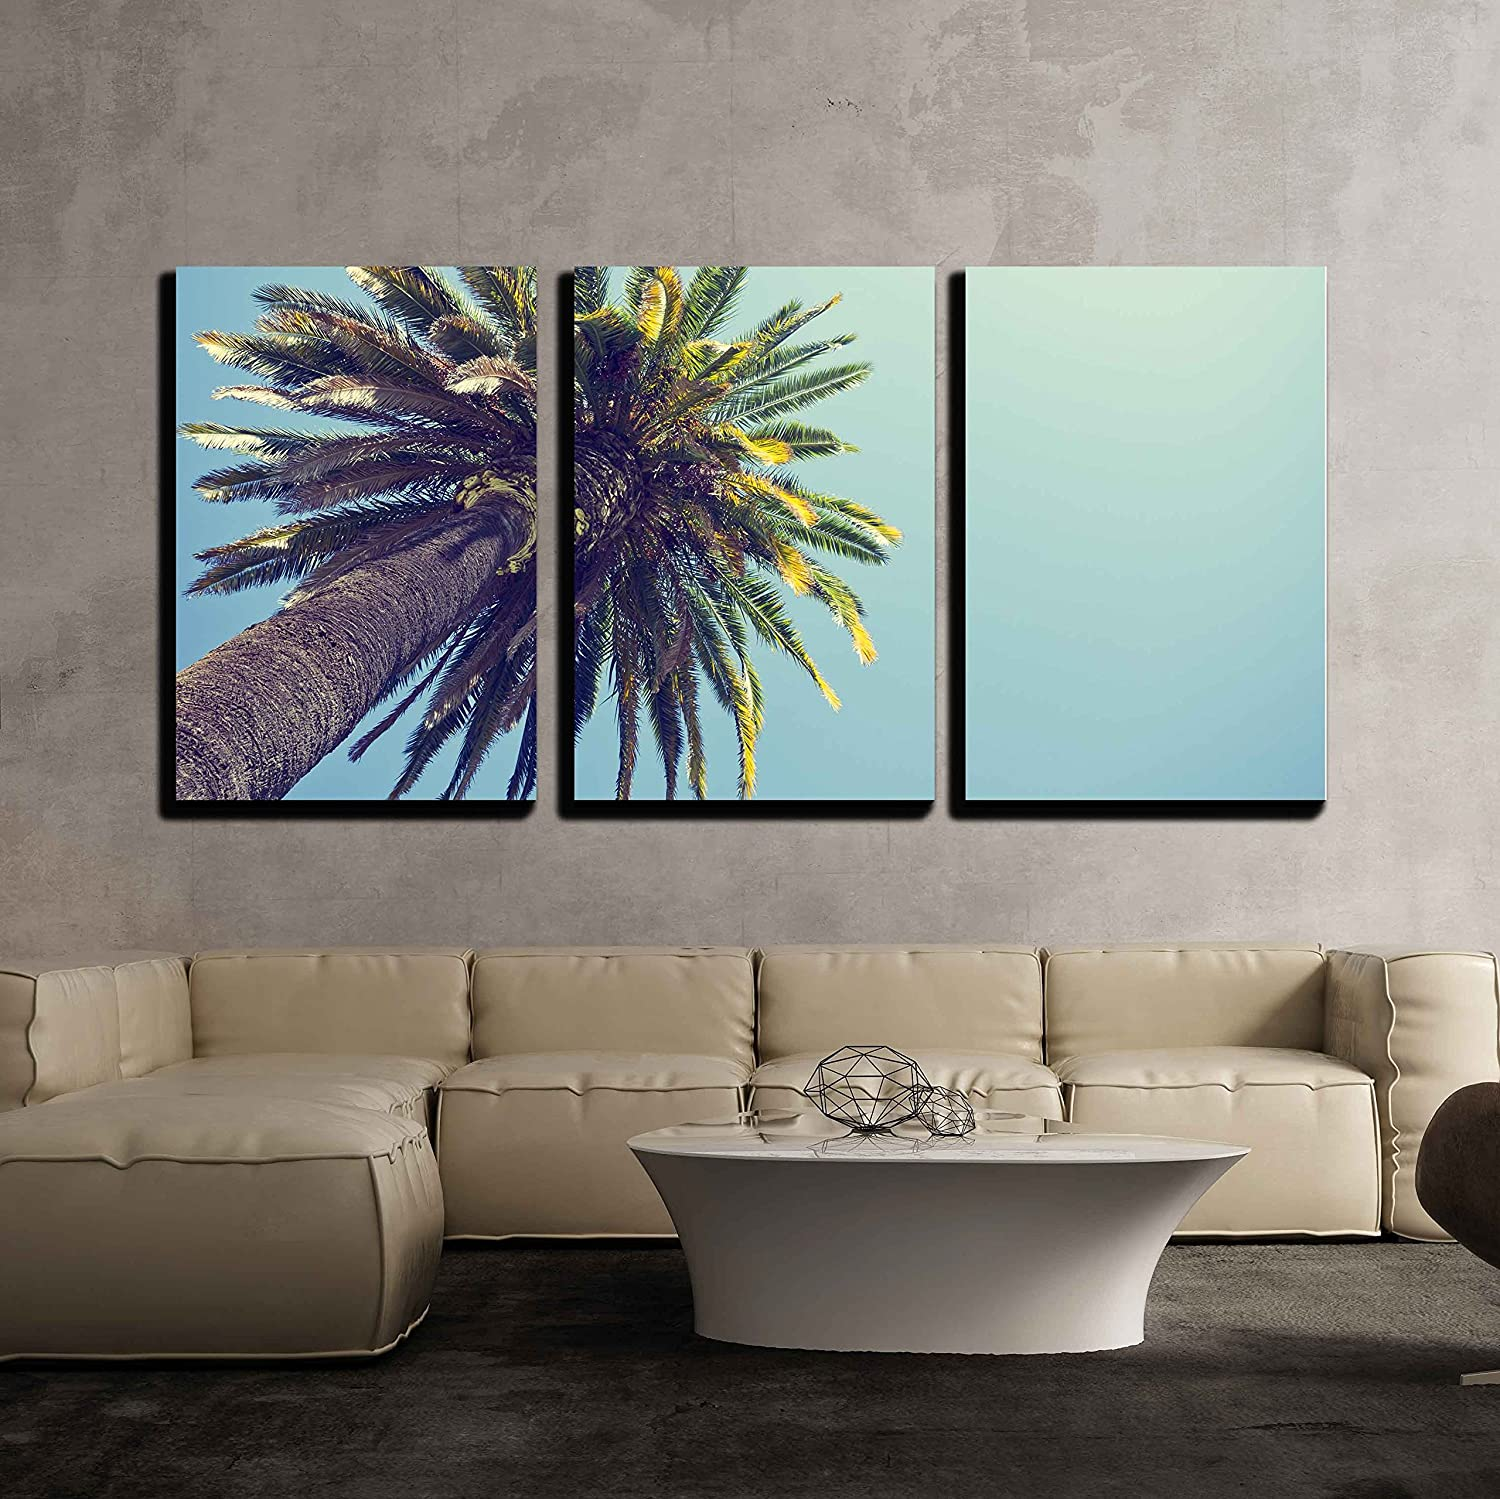 Wall26 3 piece canvas wall art palm tree in retro style orange county california modern home decor stretched and framed ready to hang 16x24x3